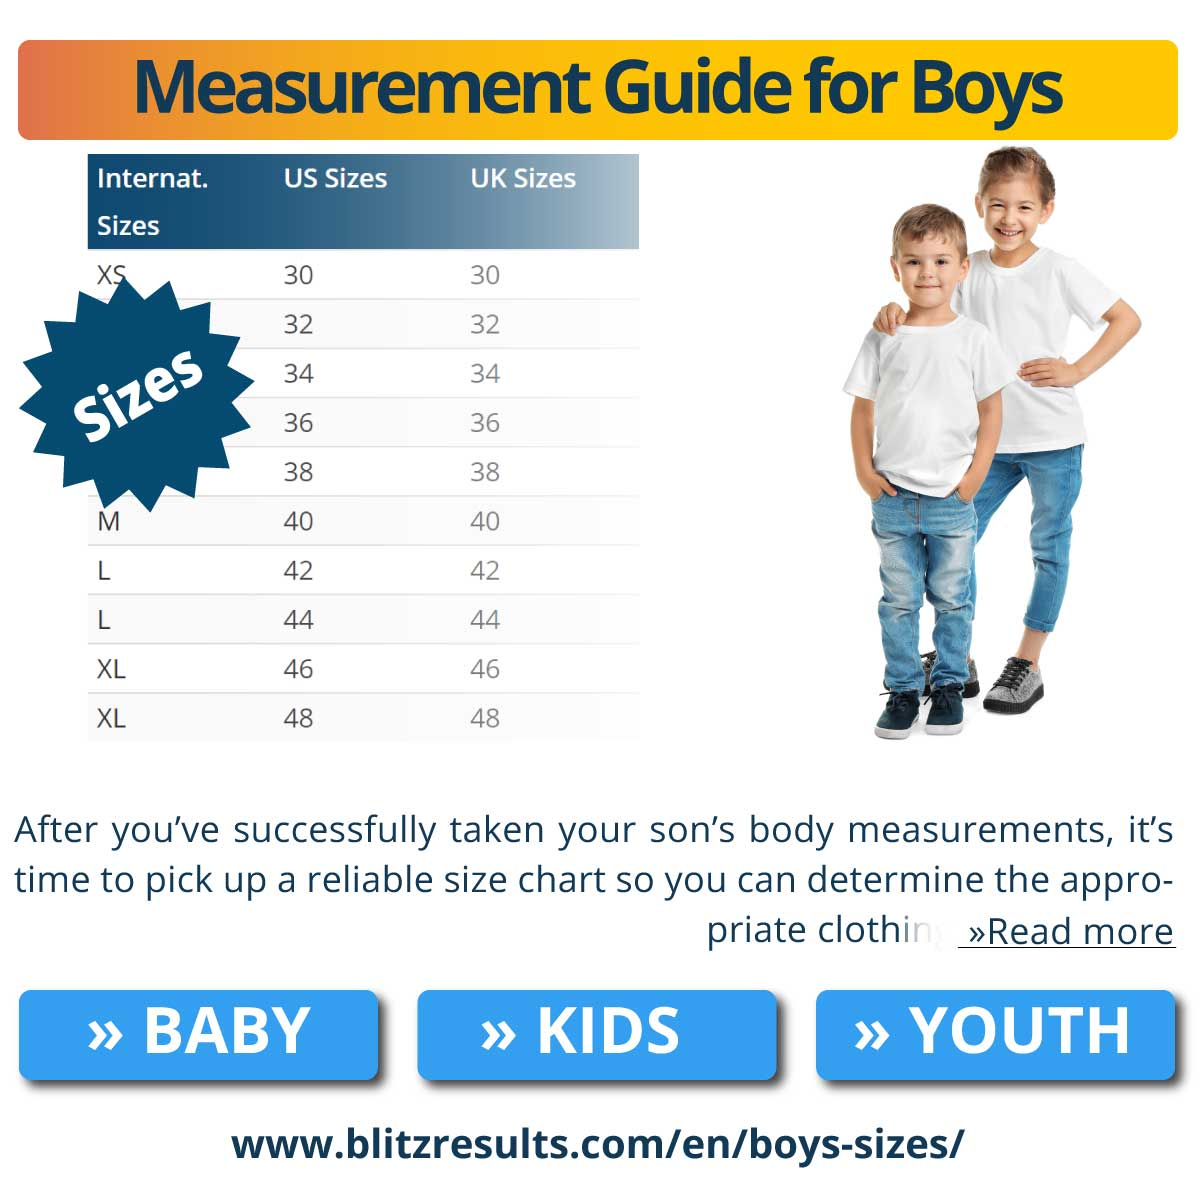 Measurement Guide for Boys